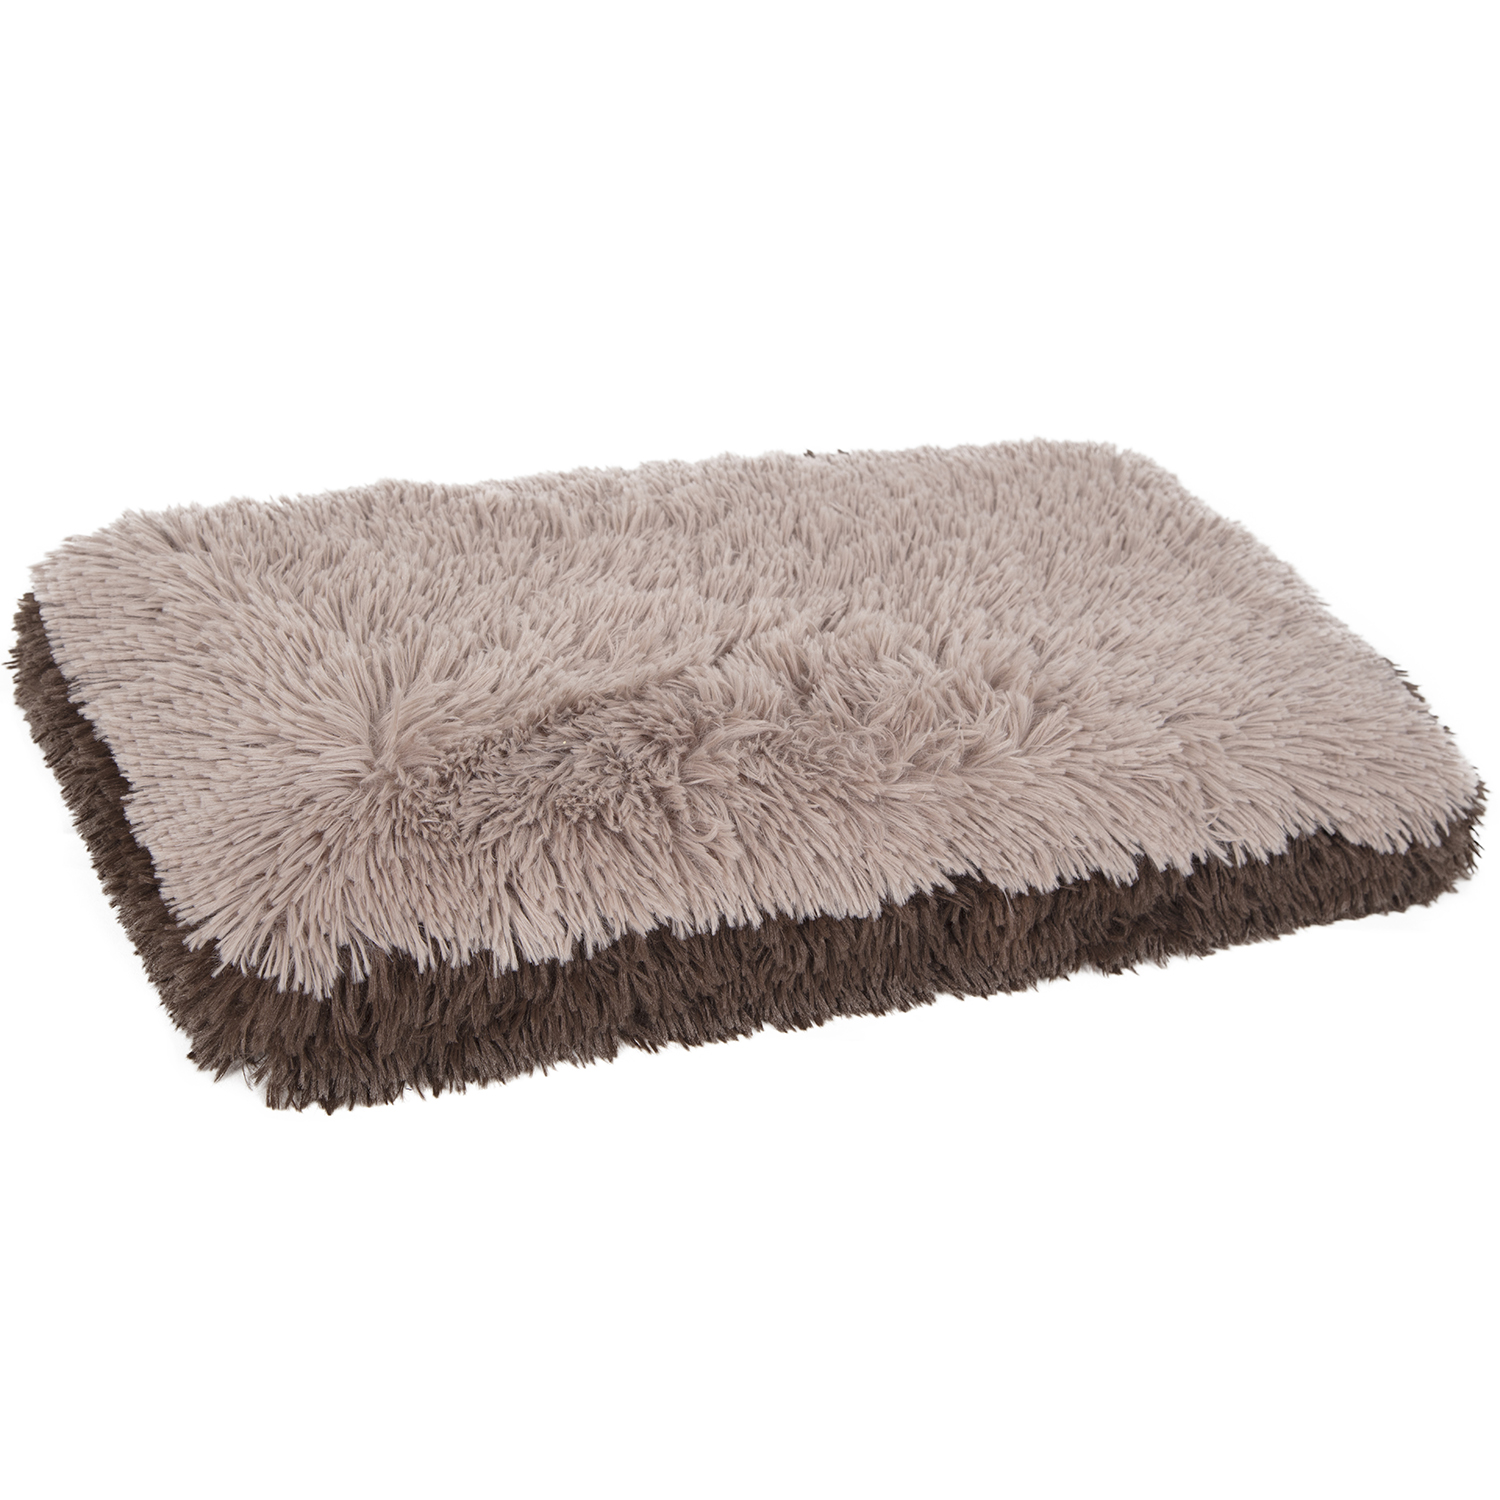 Paws & Pals Fuzzy Dog or Cat Pet Bed - Deluxe Premium Bedding Cushion Two-Toned Design